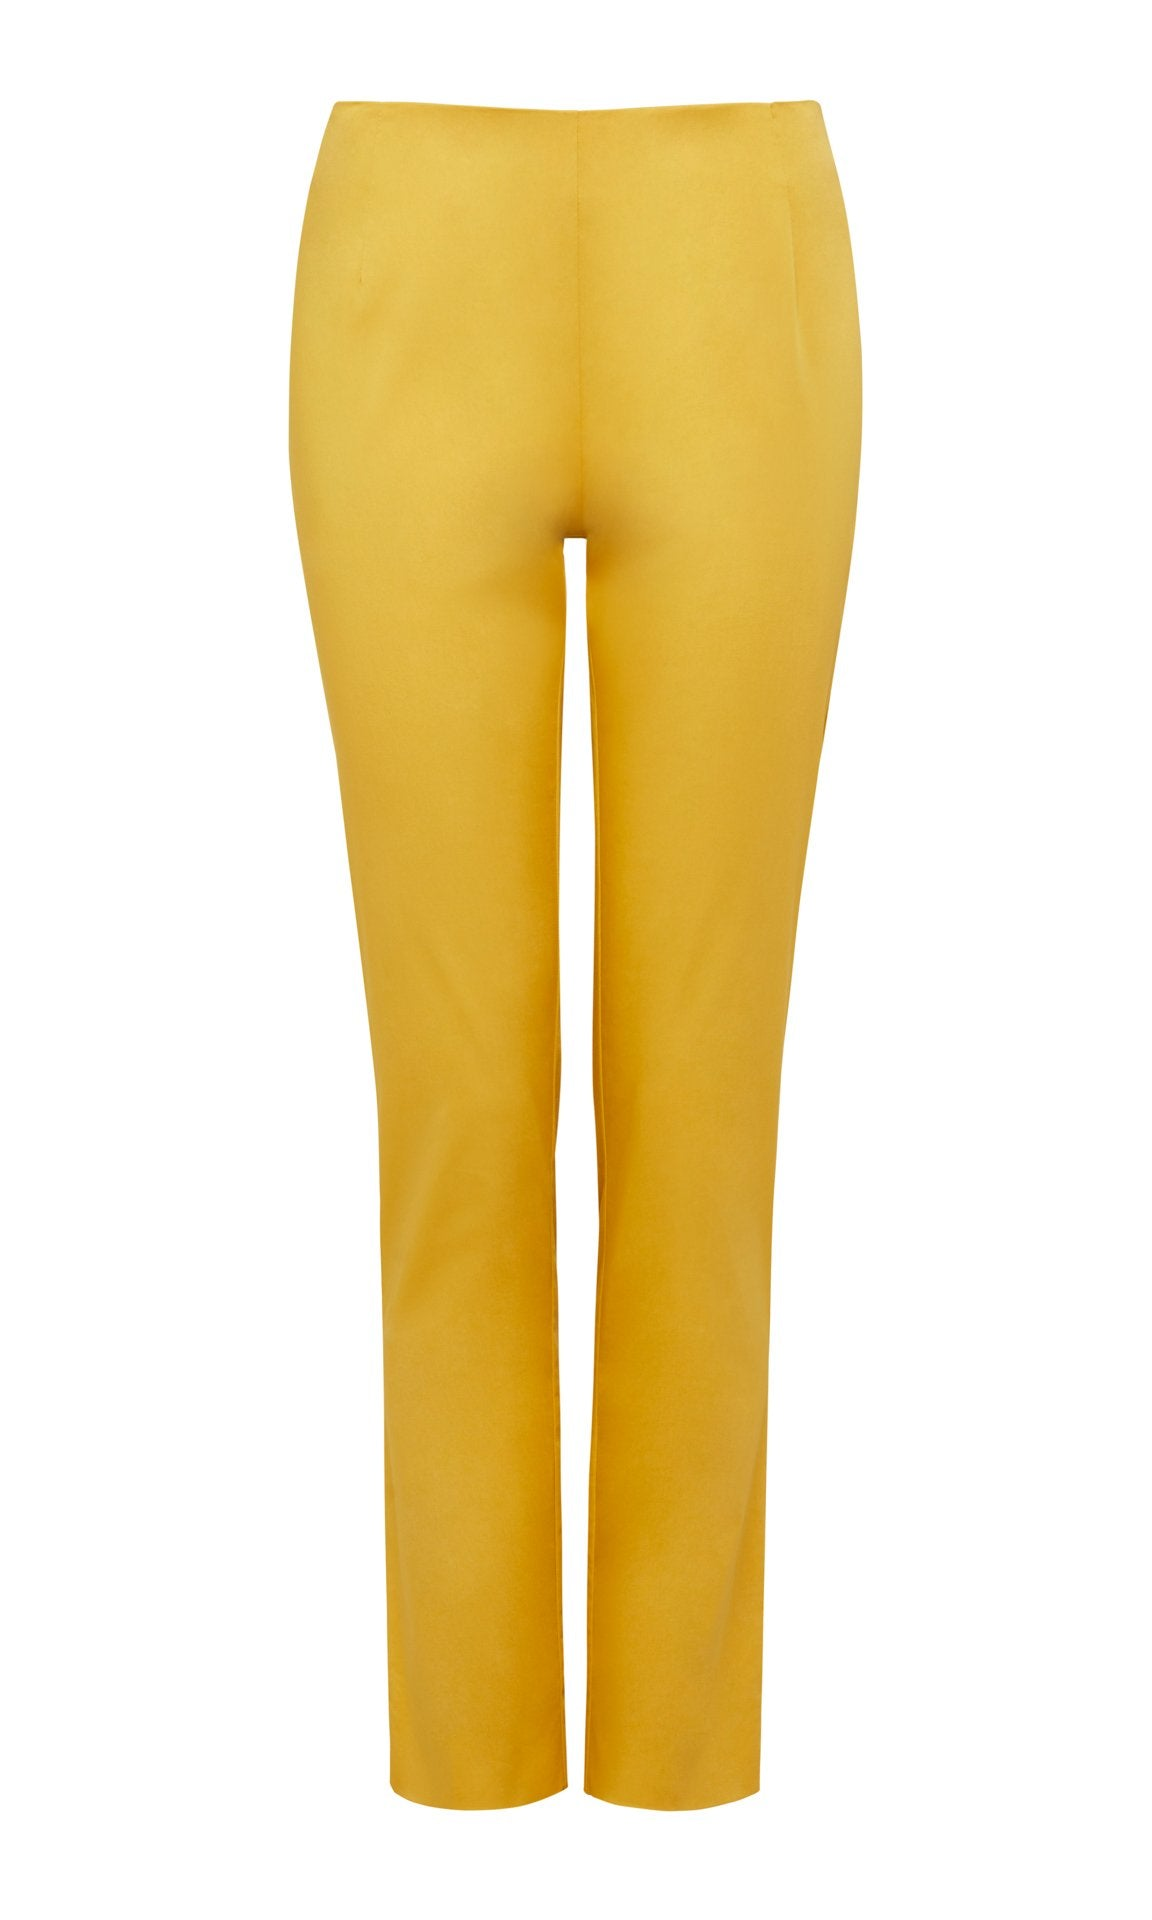 Trinity Trouser - Sungold